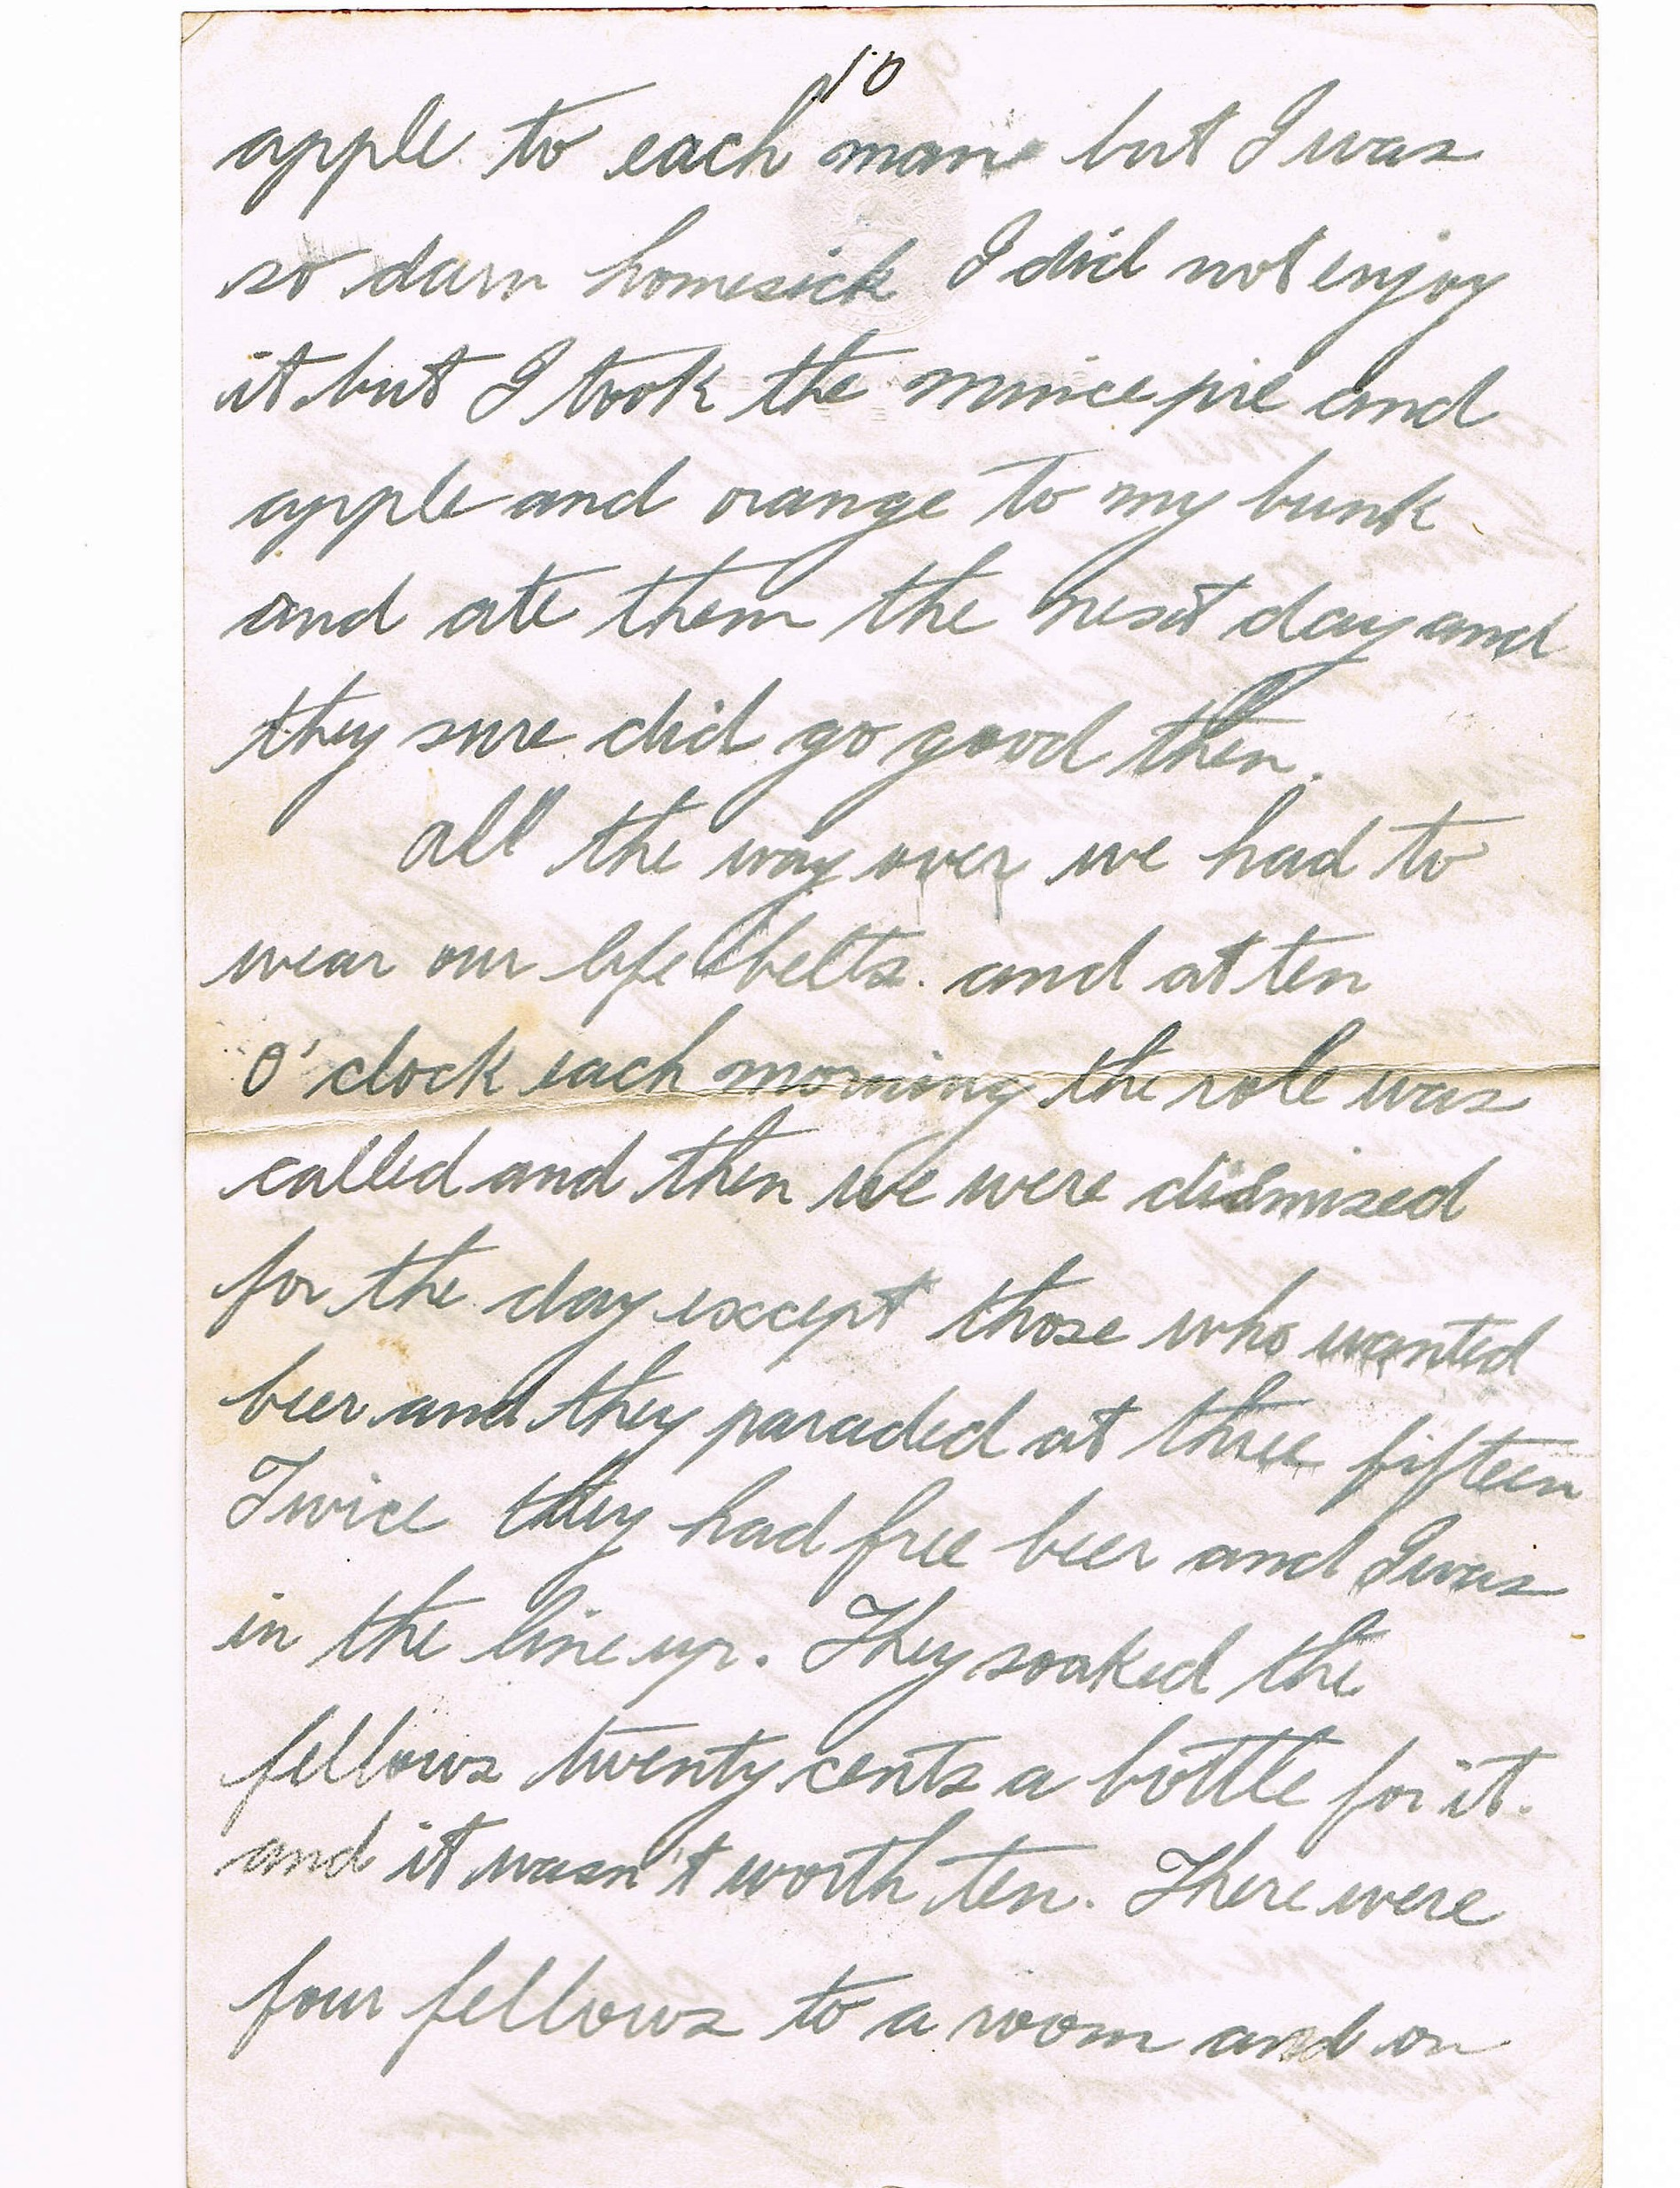 Tenth page of handwritten letter